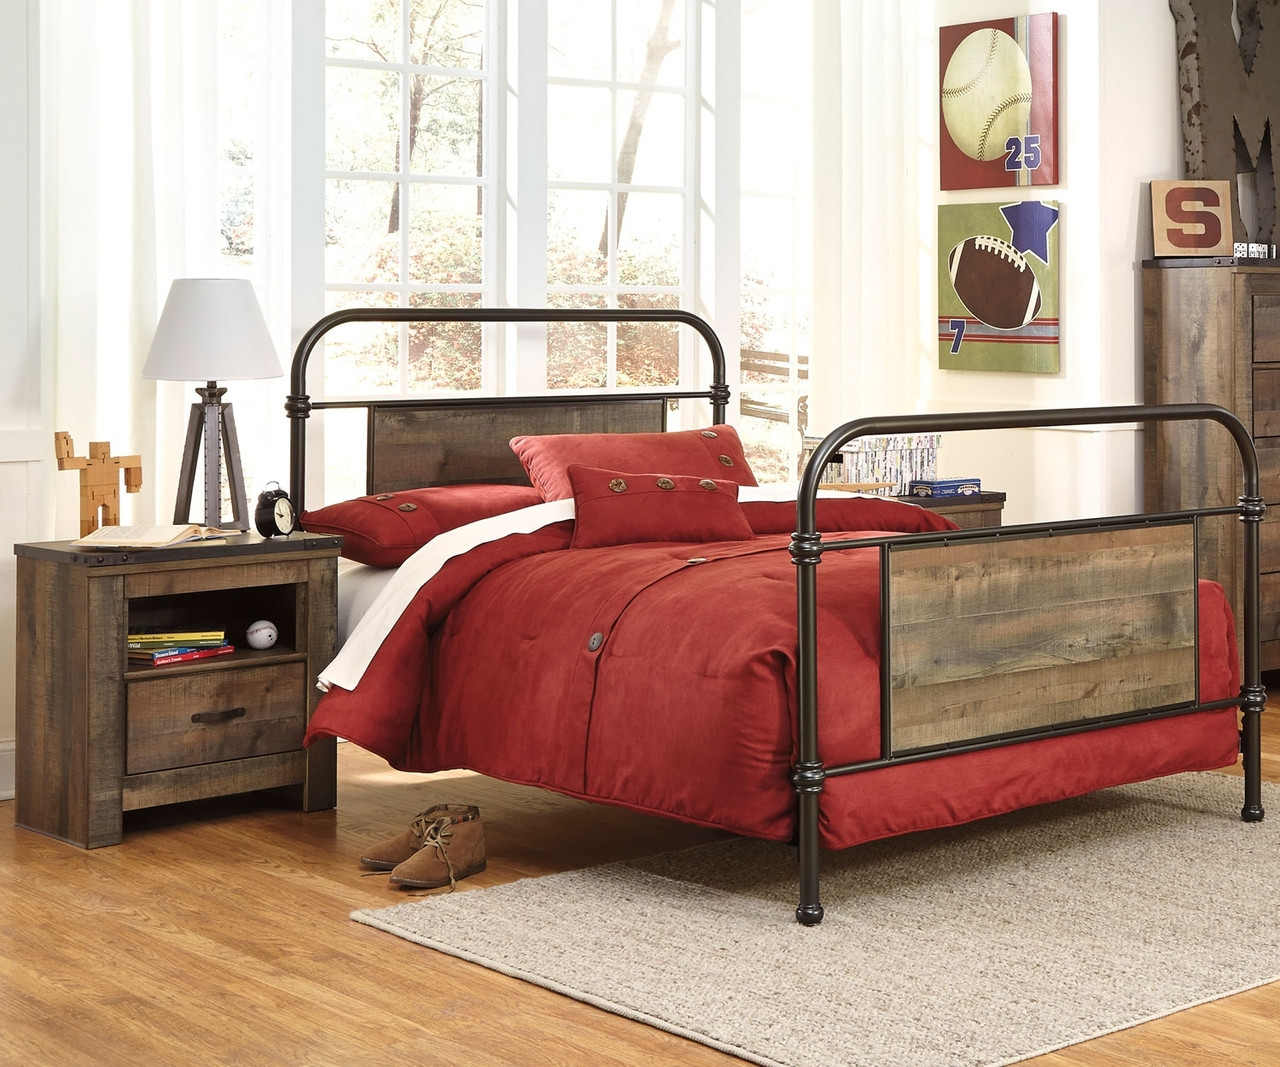 Trinell b446 twin size metal bed ashley kids furniture for Twin size beds for boys